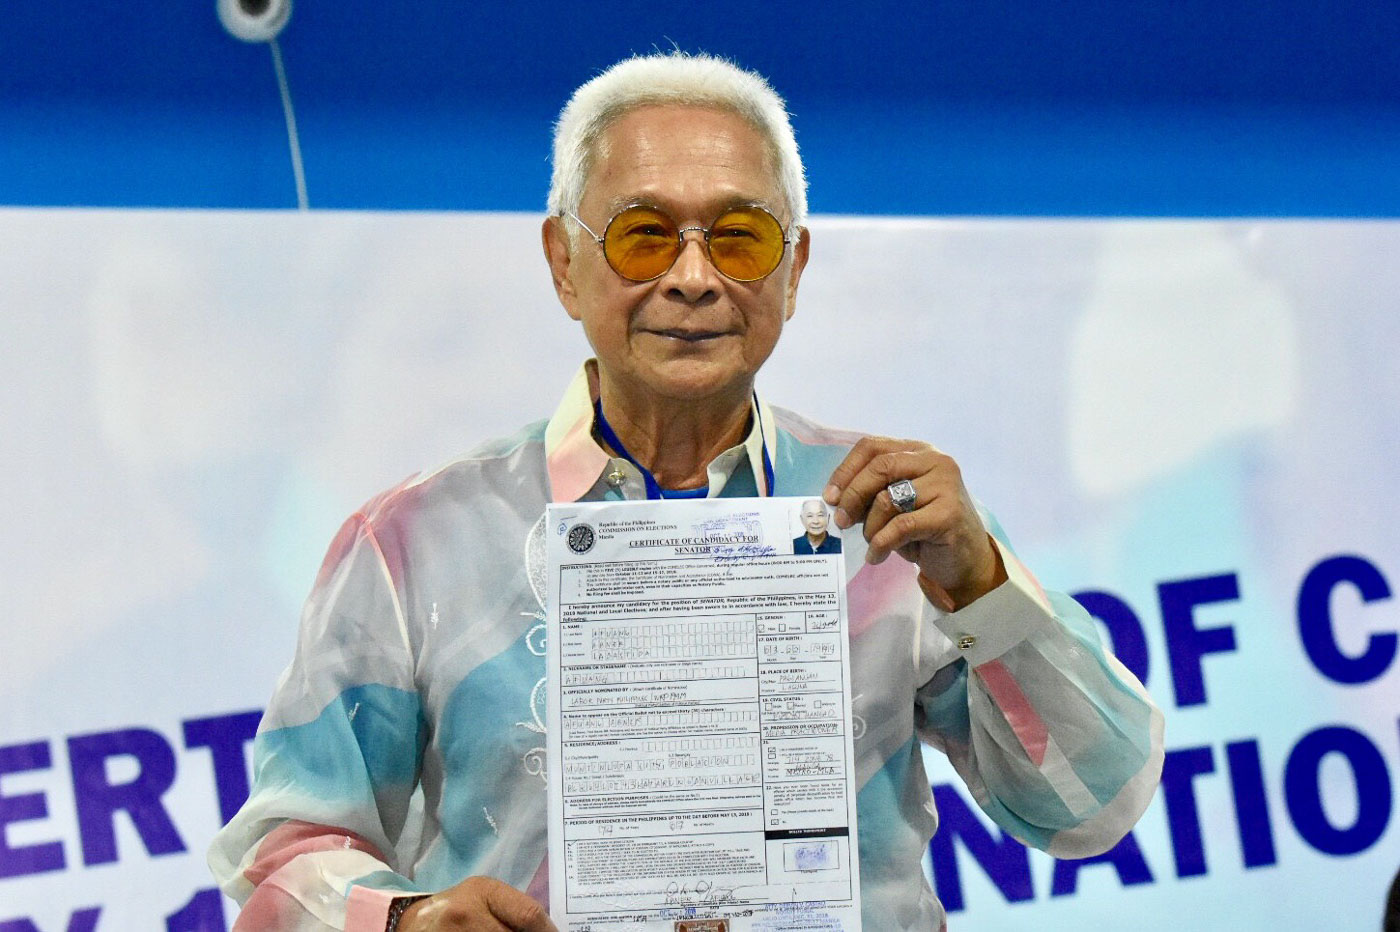 Former police and Pagsanjan, Laguna Mayor Abner Afuang files his Certificate on Candidacy for Senator on October 11, 2018 at the Comelec office in Manila. Photo by Angie de Silva/Rappler